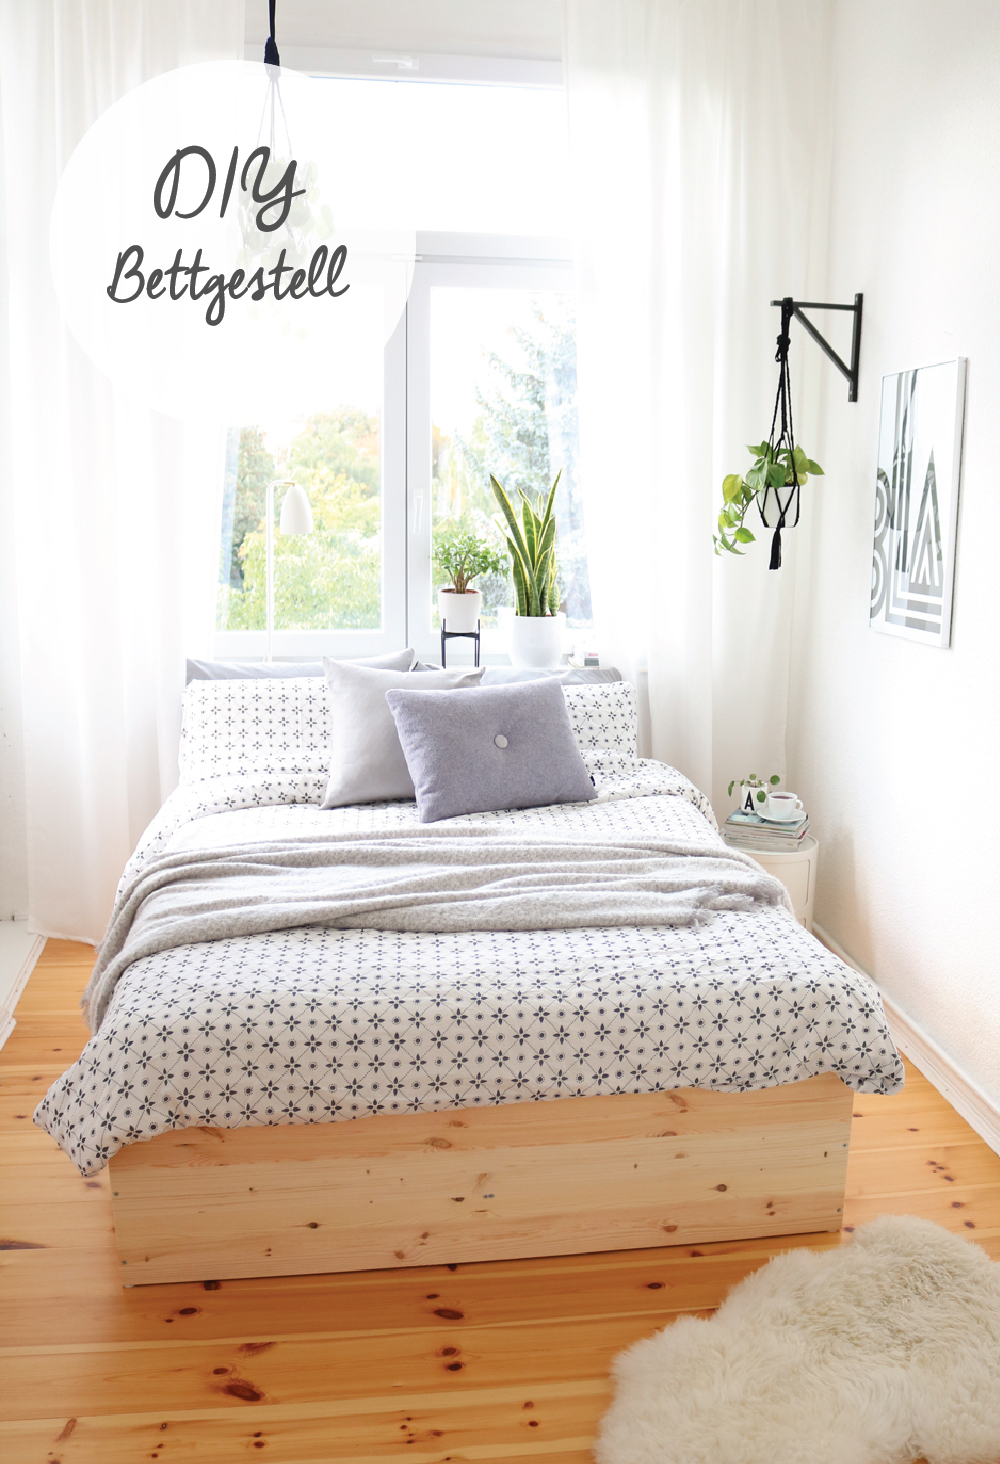 Memory Matratze Diy | Bettgestell Aus Holzplatten - It's Pretty Nice